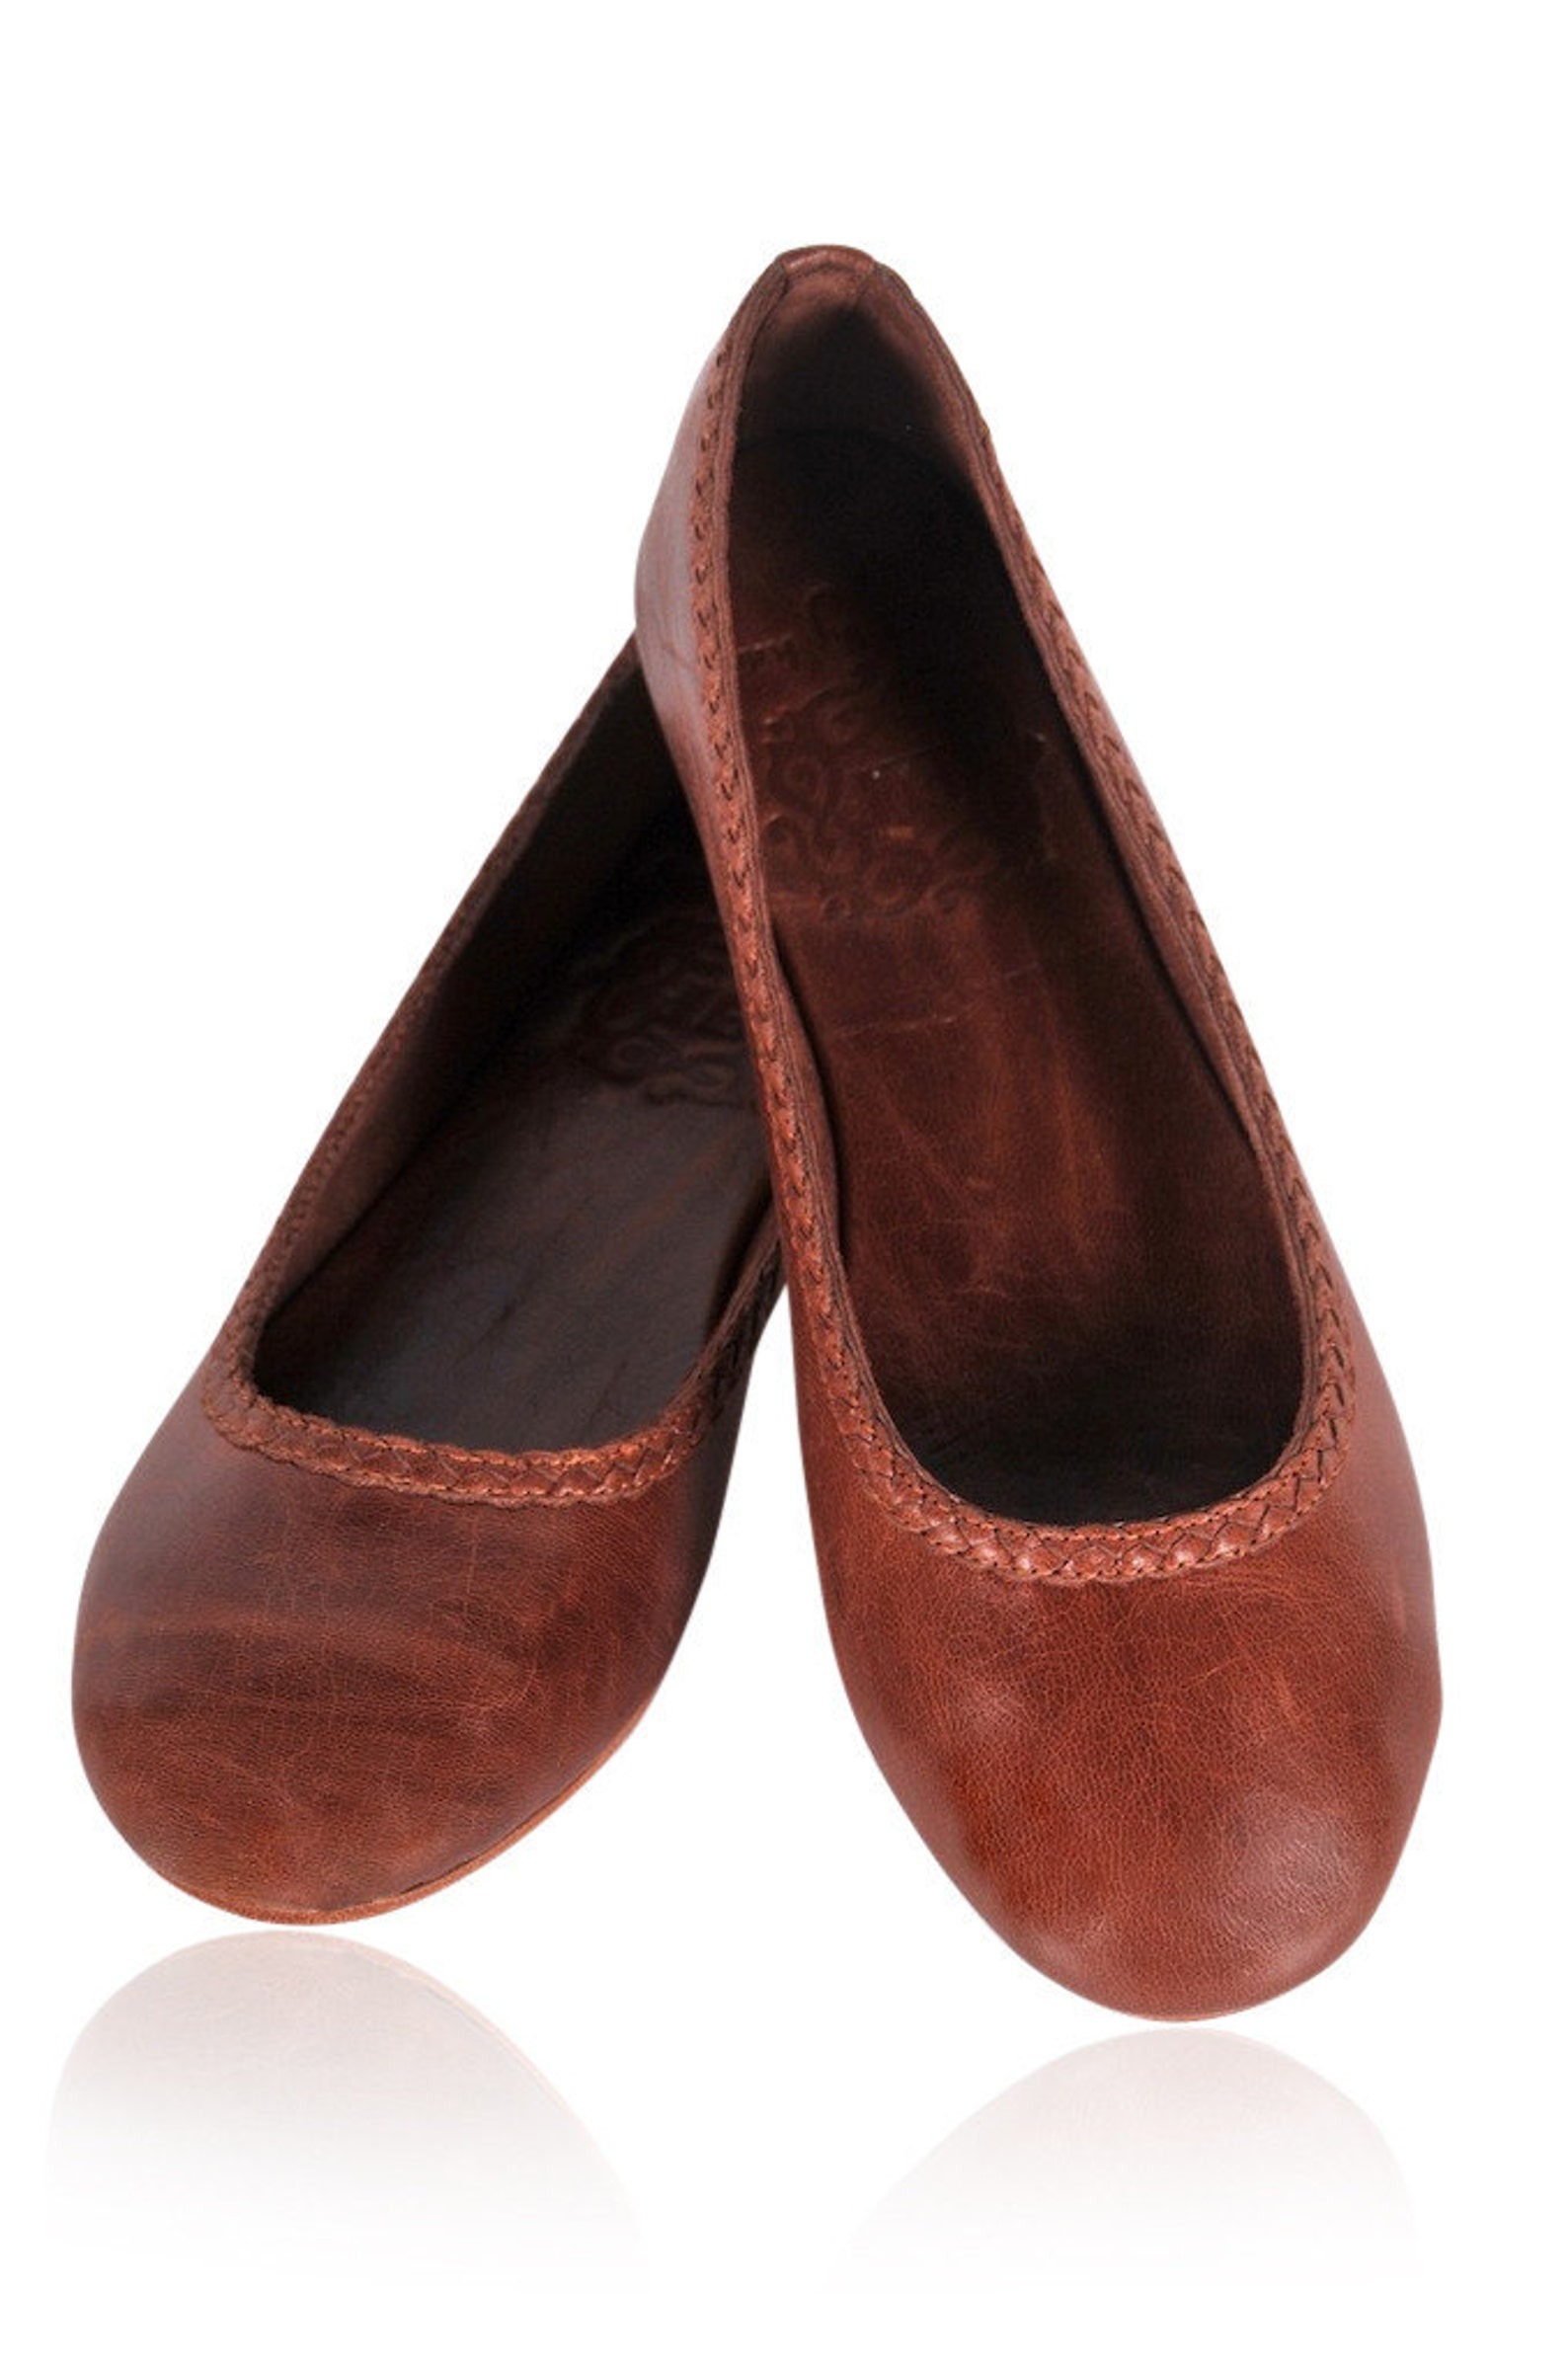 aisÉ. leather flat shoes / leather ballet flats / brown leather shoes. sizes: us 4-13, eur 35-43. available in different leather